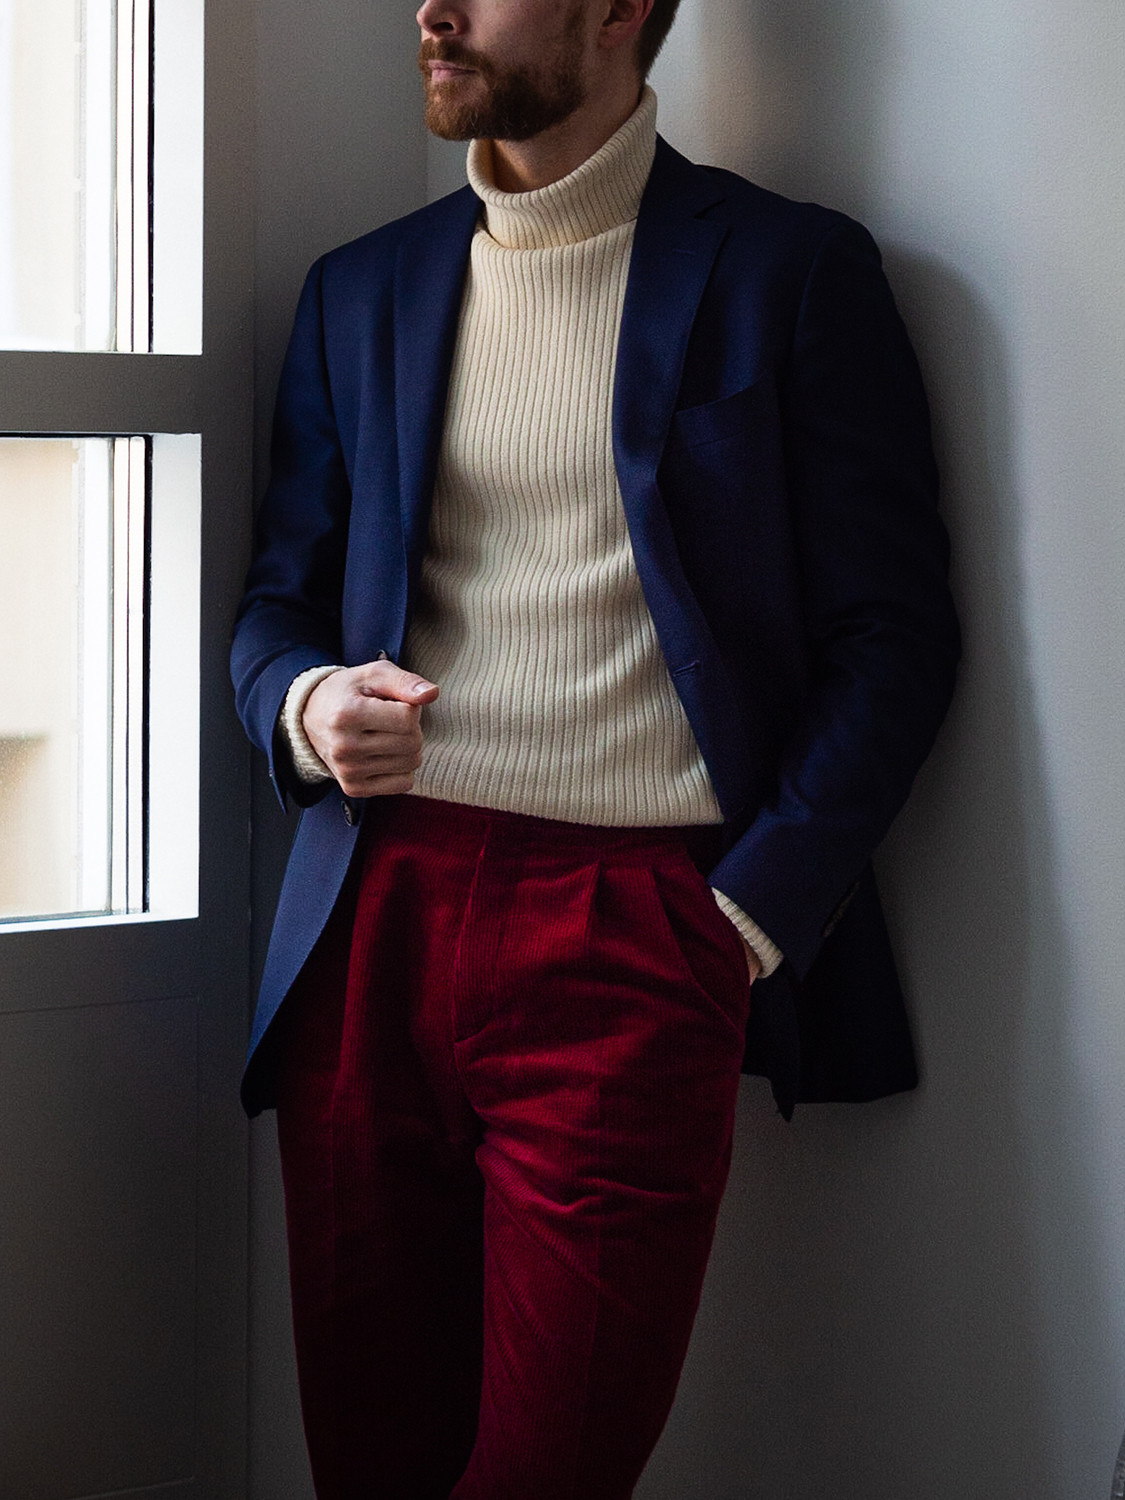 Men's outfit idea for 2021 with navy plain blazer, heavyweight rollneck jumper, red plain formal trousers, brown brogues. Suitable for autumn and winter.